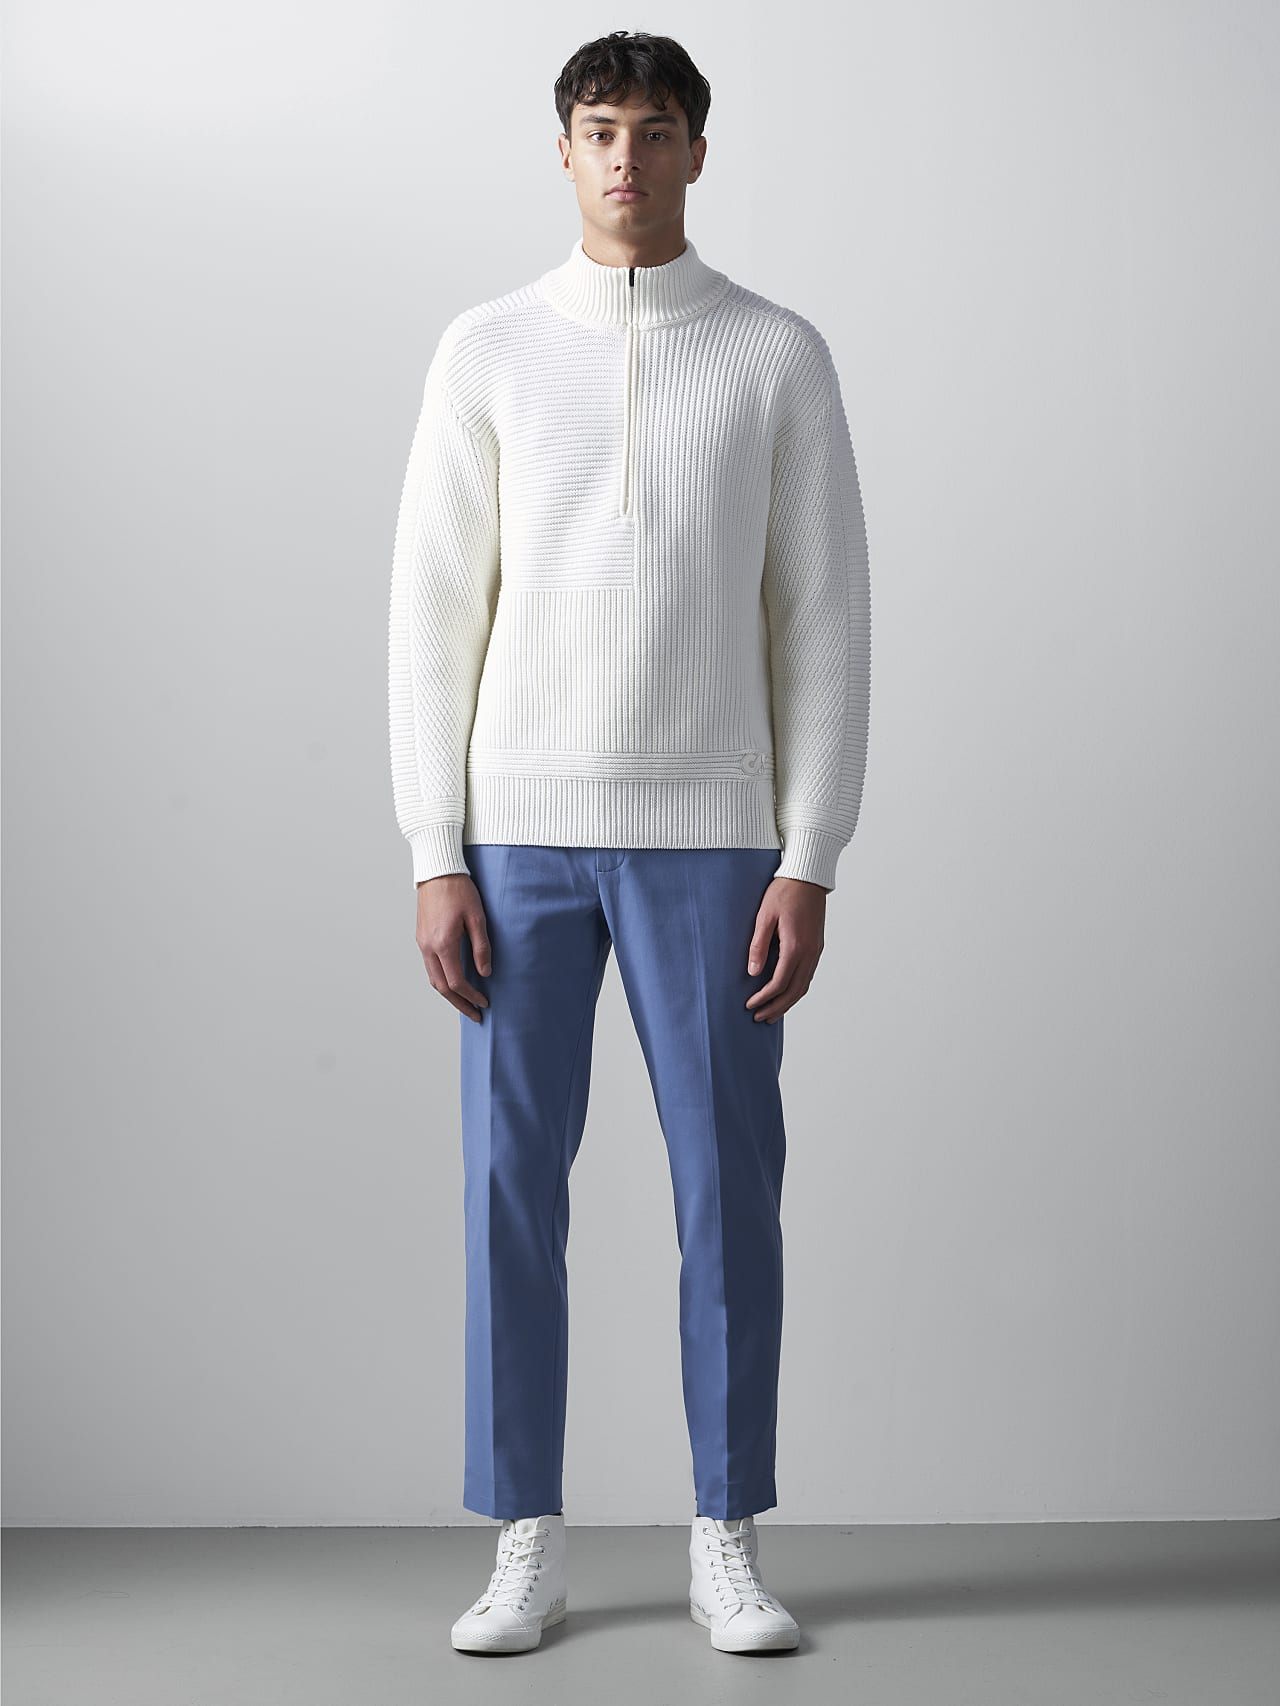 FAAMN V1.Y5.02 Chunky Knit Wool Jumper offwhite Front Alpha Tauri